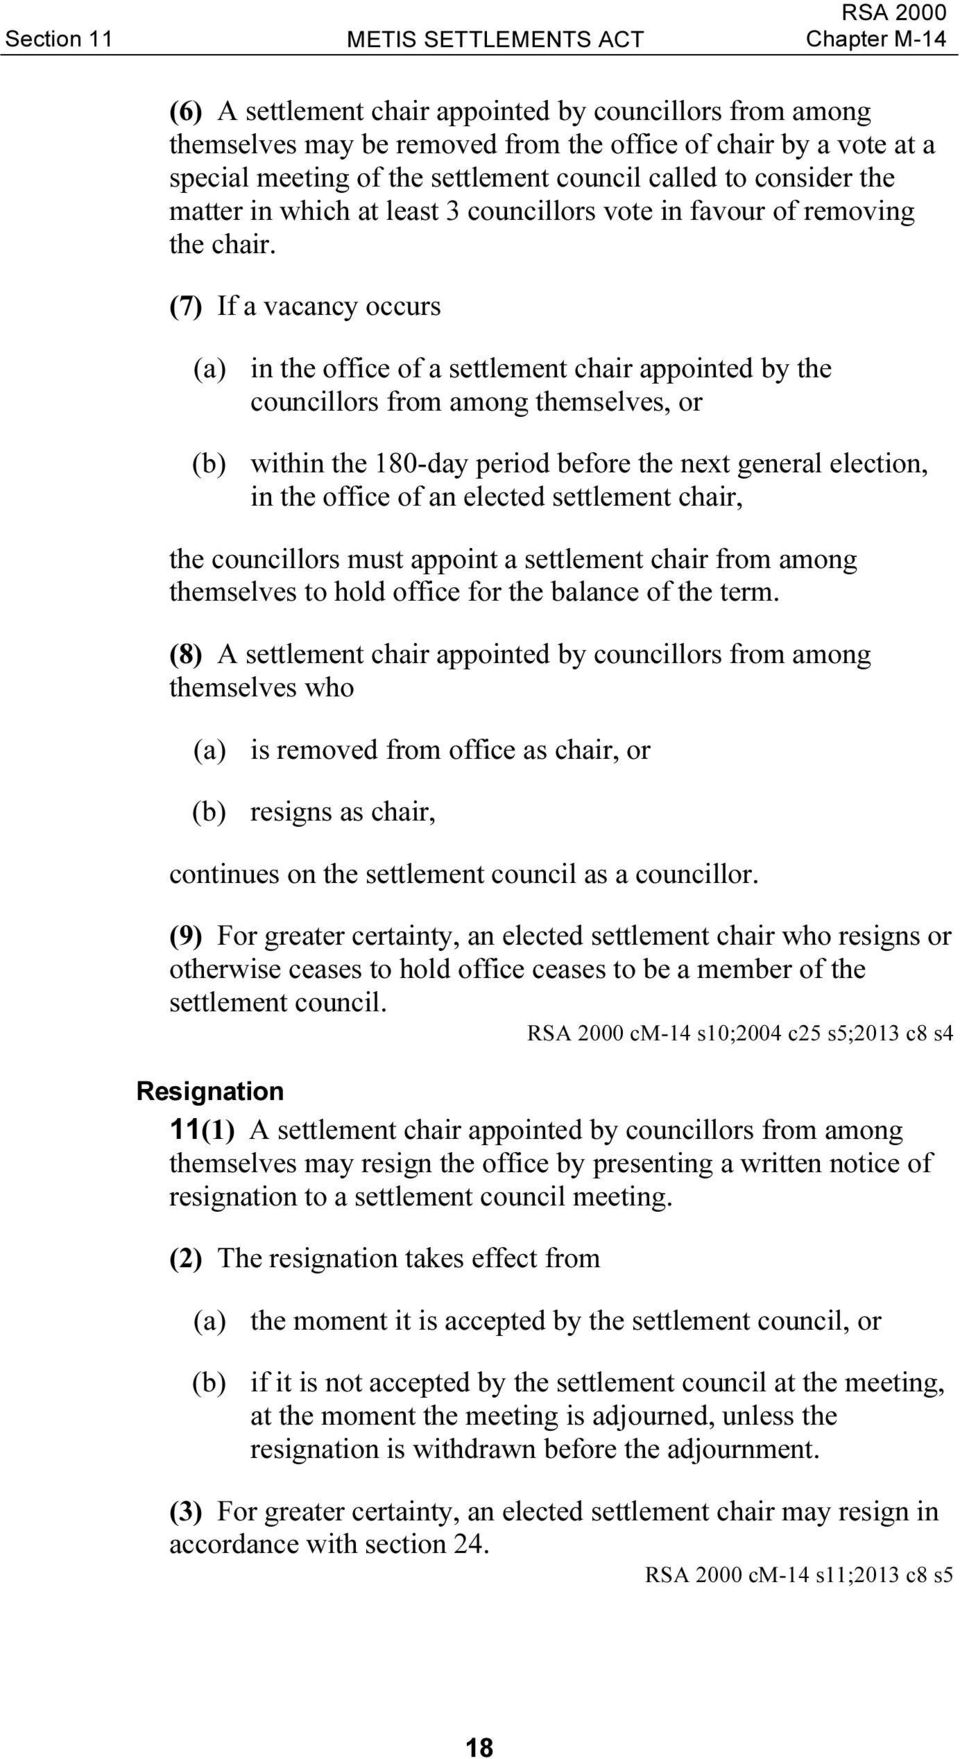 (7) If a vacancy occurs (a) in the office of a settlement chair appointed by the councillors from among themselves, or (b) within the 180-day period before the next general election, in the office of